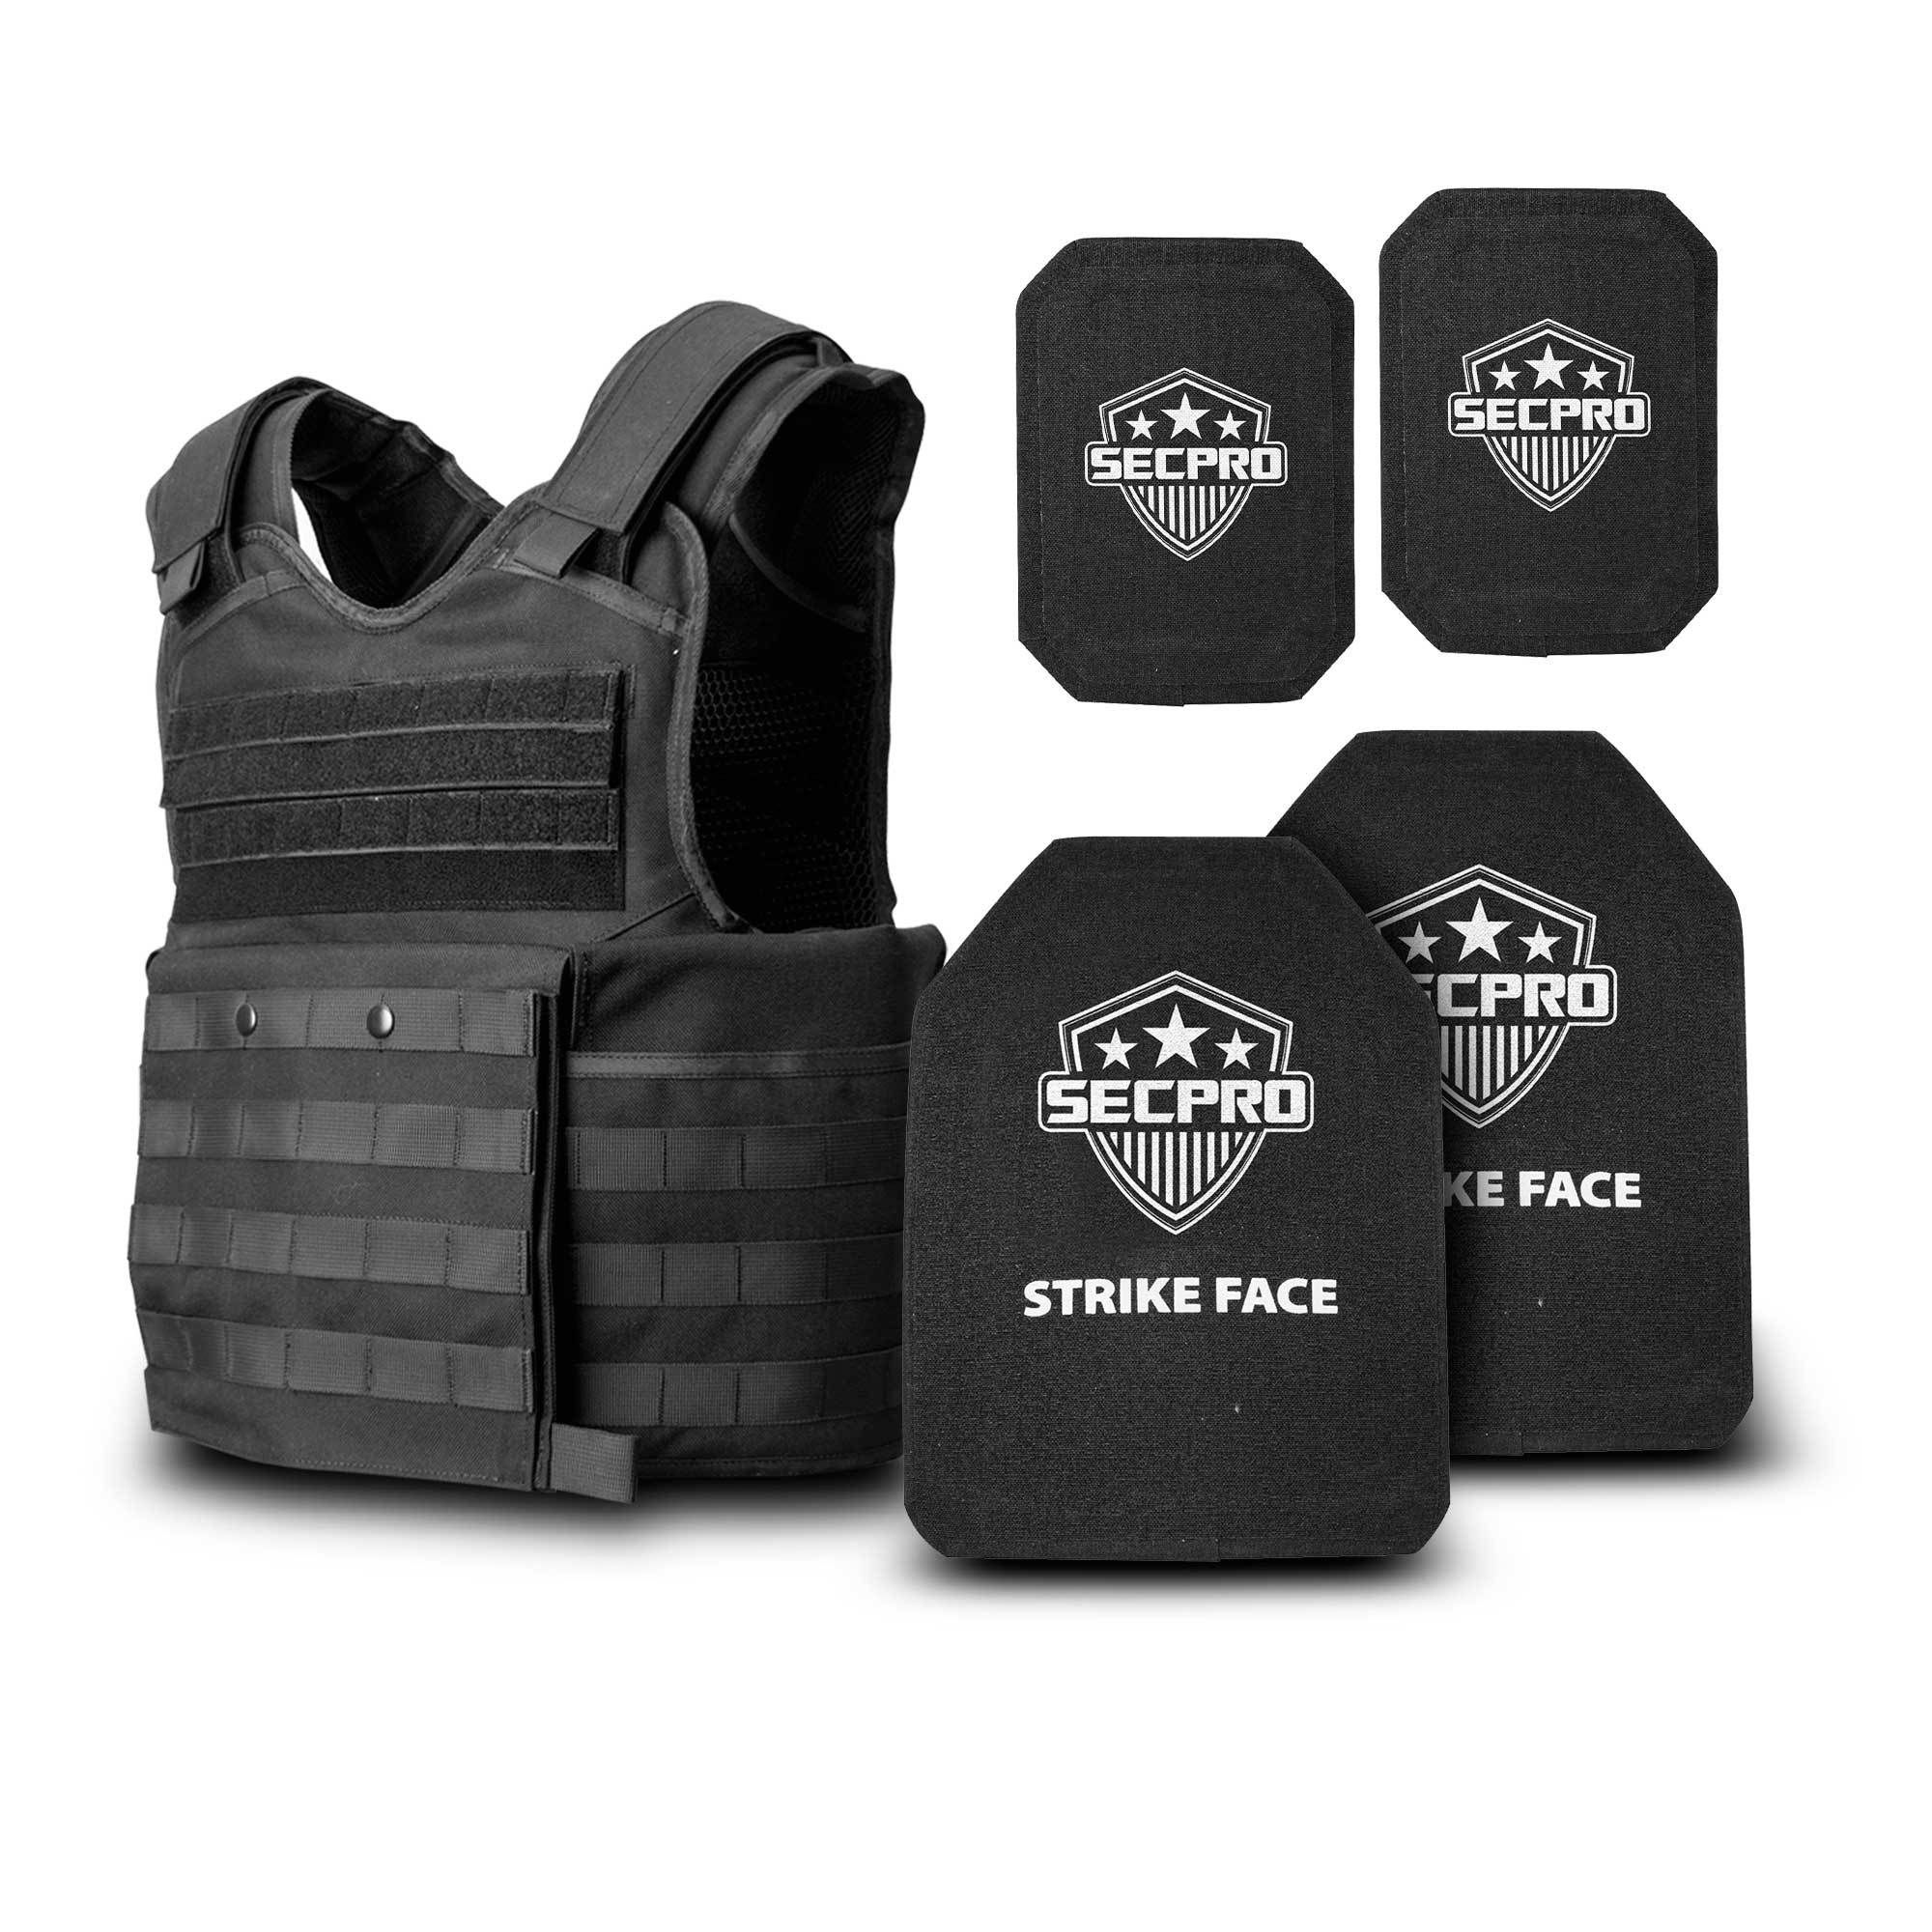 NEW Condor style Tactical Plate Carrier in Black OSFM